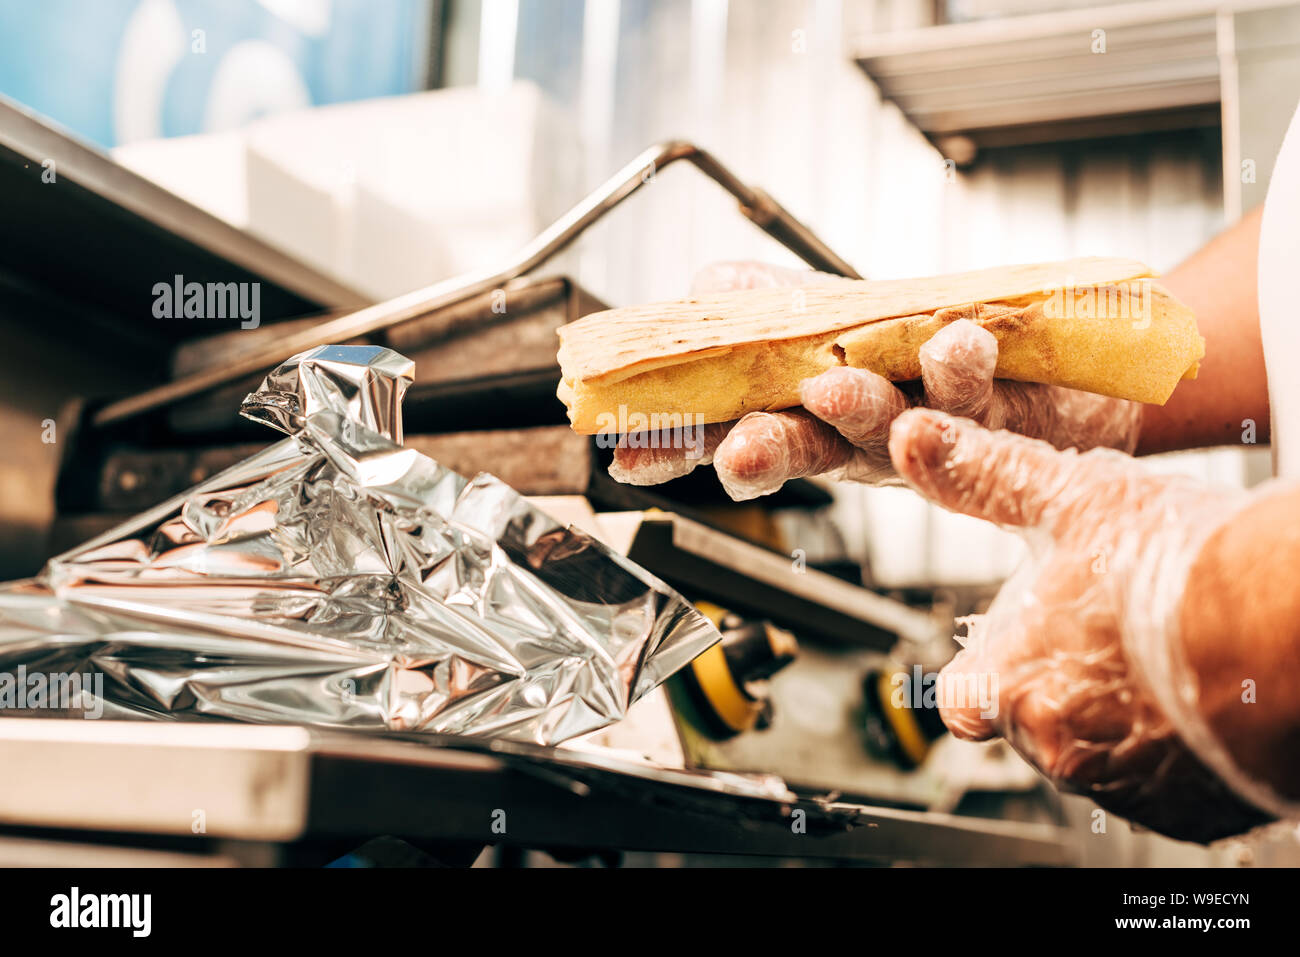 Partial View Of Cook In Gloves Using Aluminium Foil While